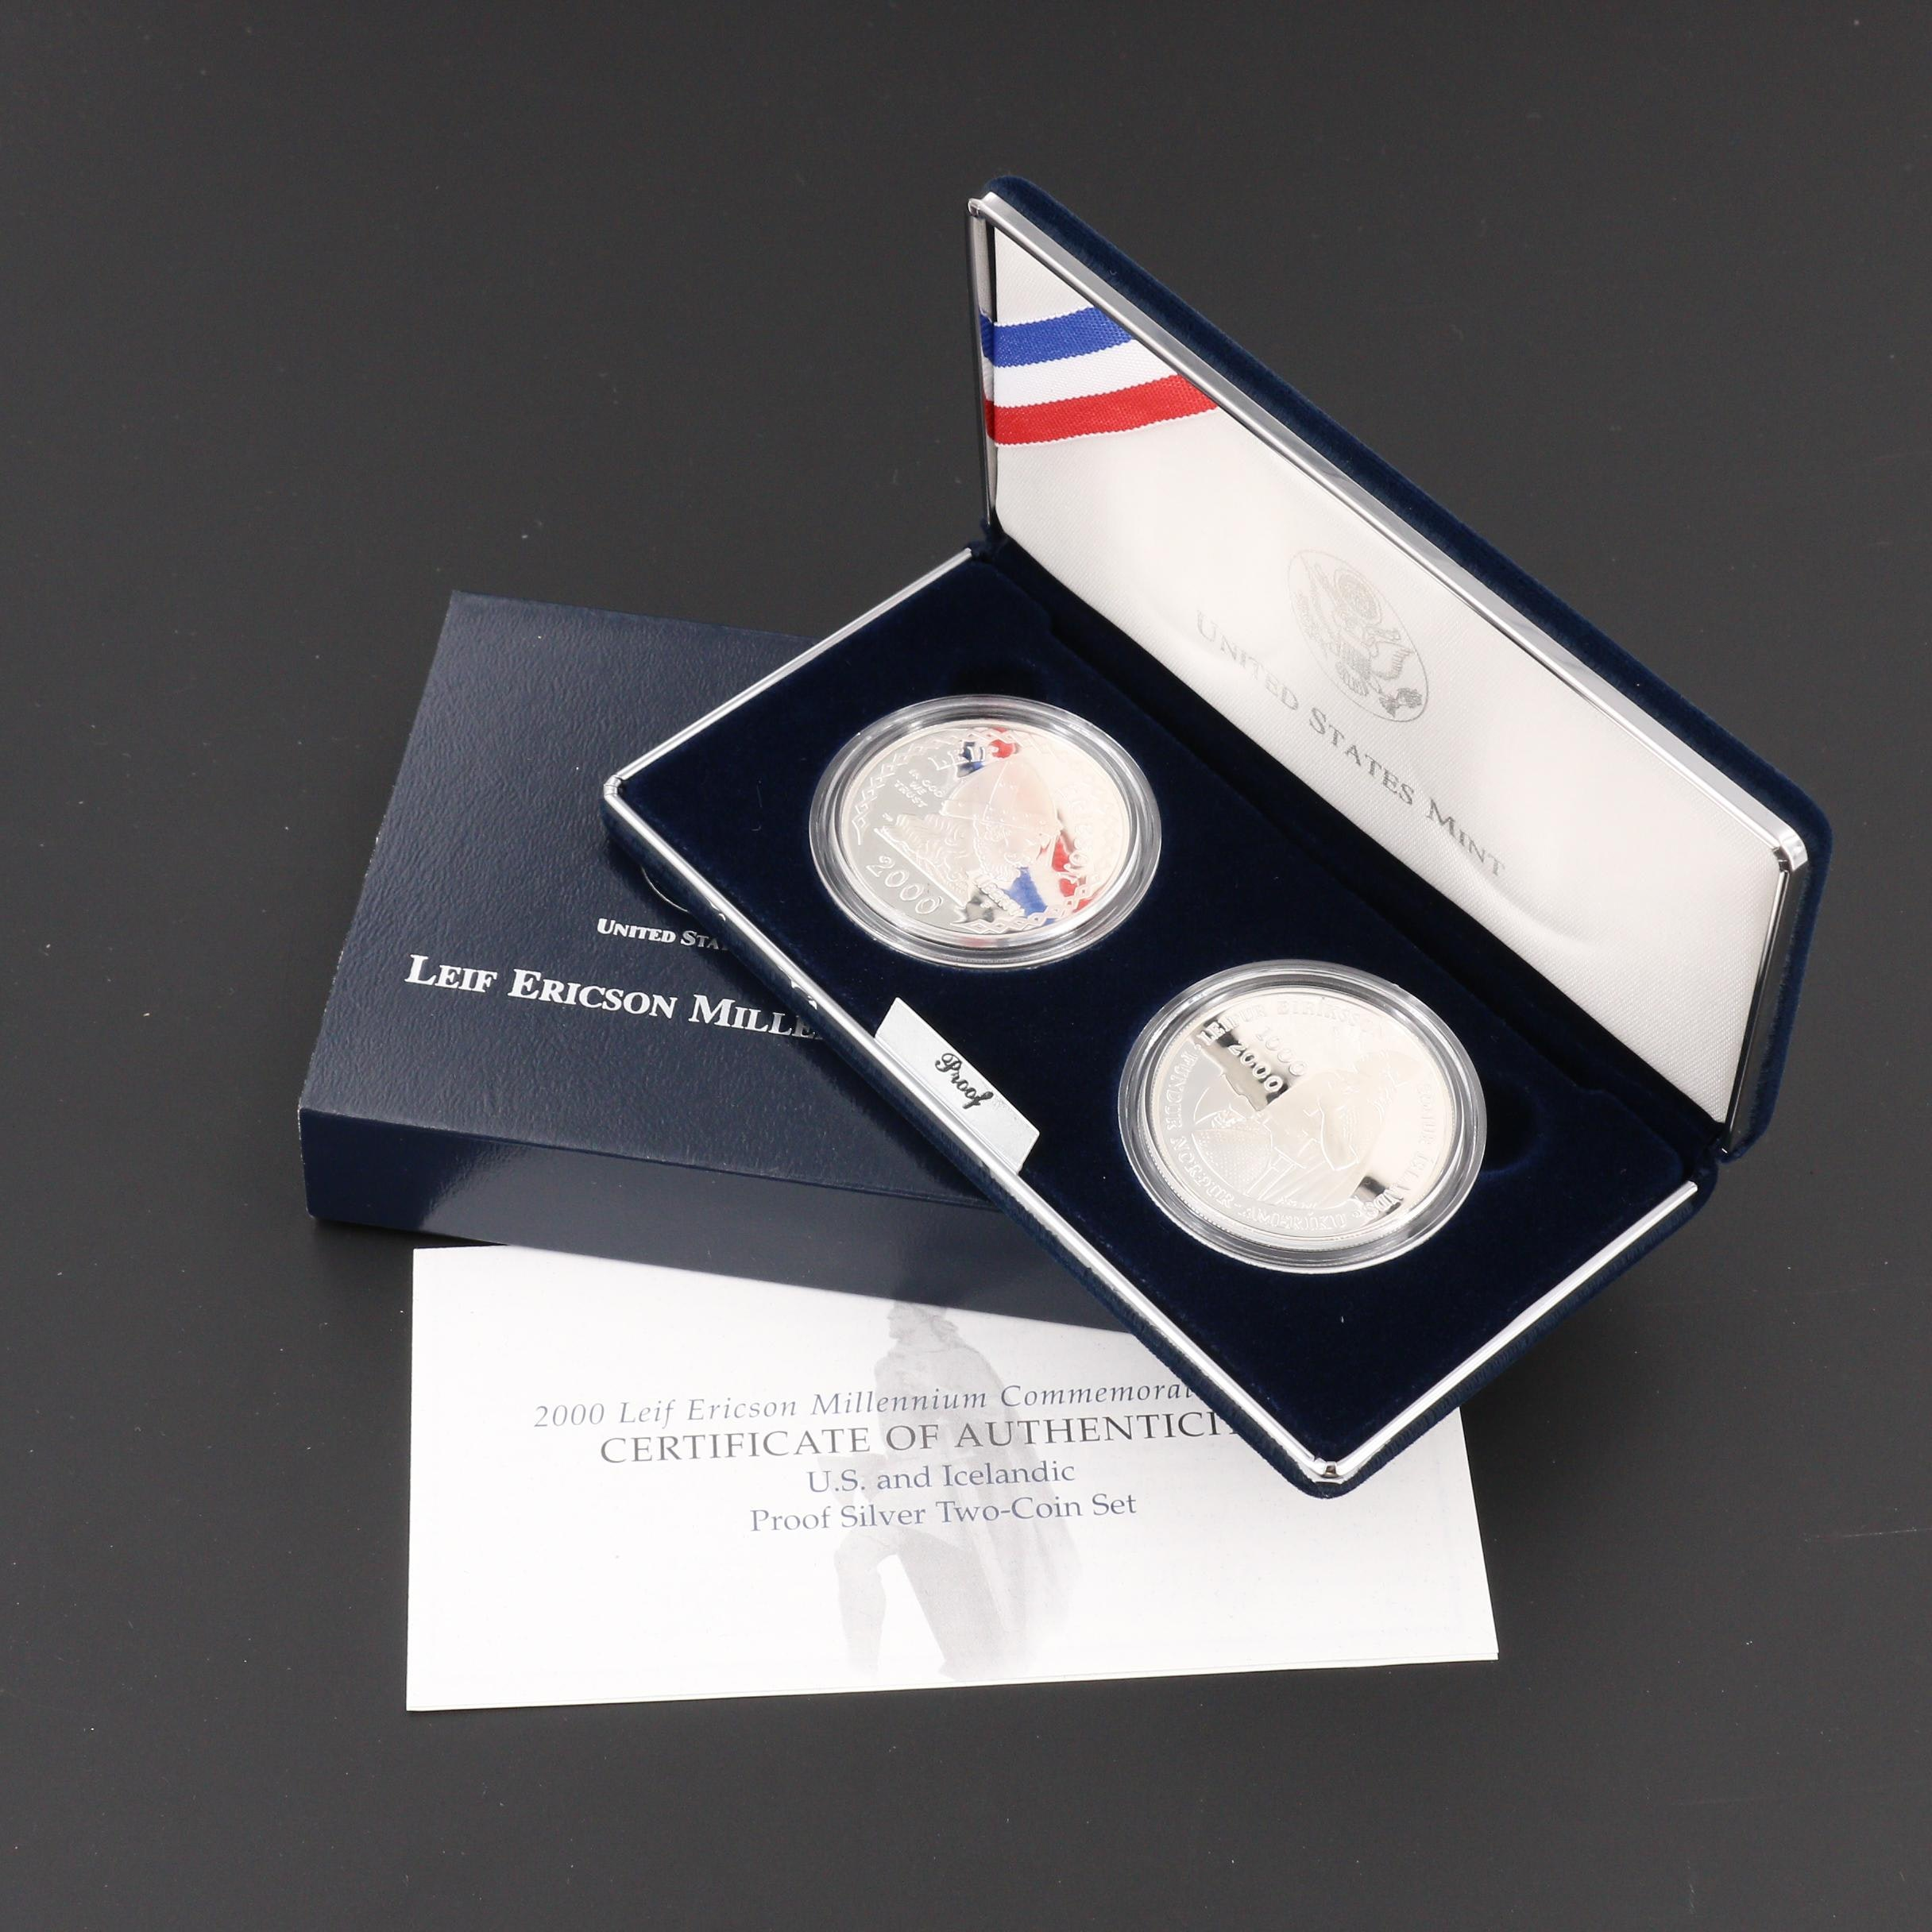 A 2000 Leif Ericson Silver Proof Two-Coin Commemorative Set